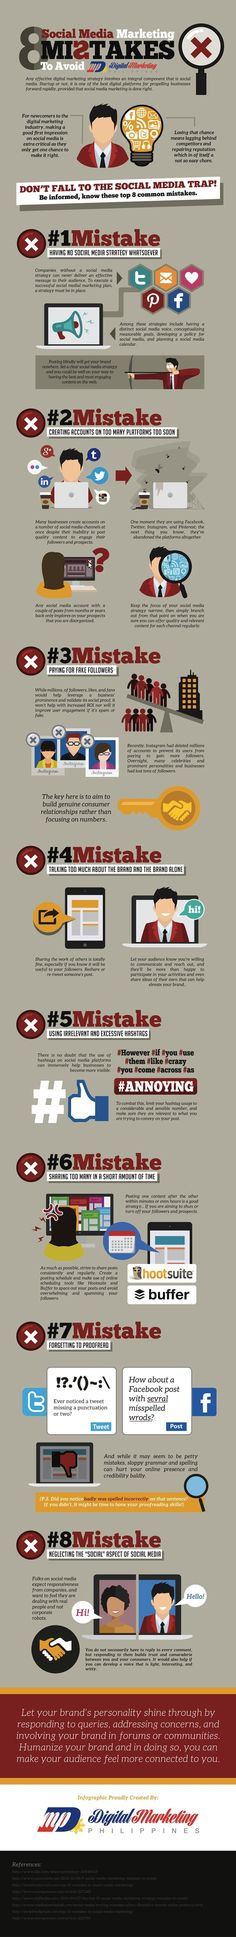 Lots of great tips here! --- Social Media Marketing Mistakes AND Take this Free Full Lenght Video Training on HOW to Start an Online Business